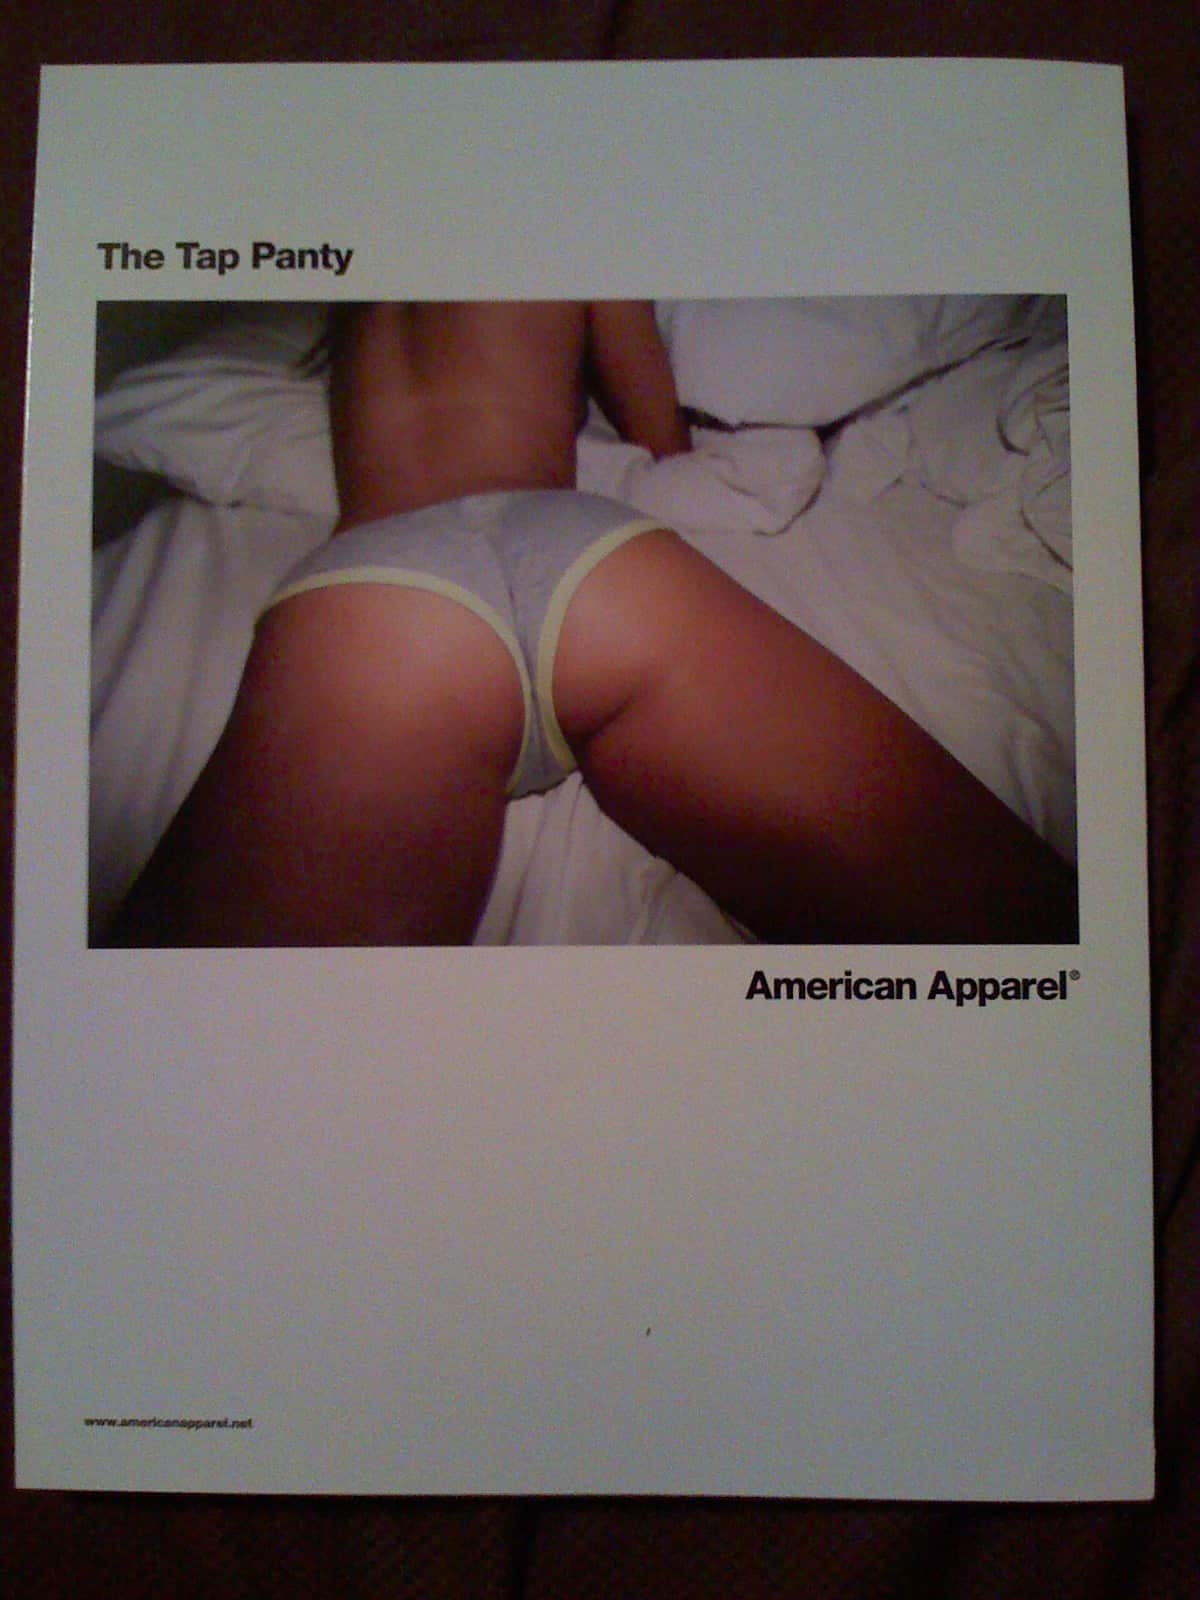 american-apparel-ad-for-tap-panty.jpg